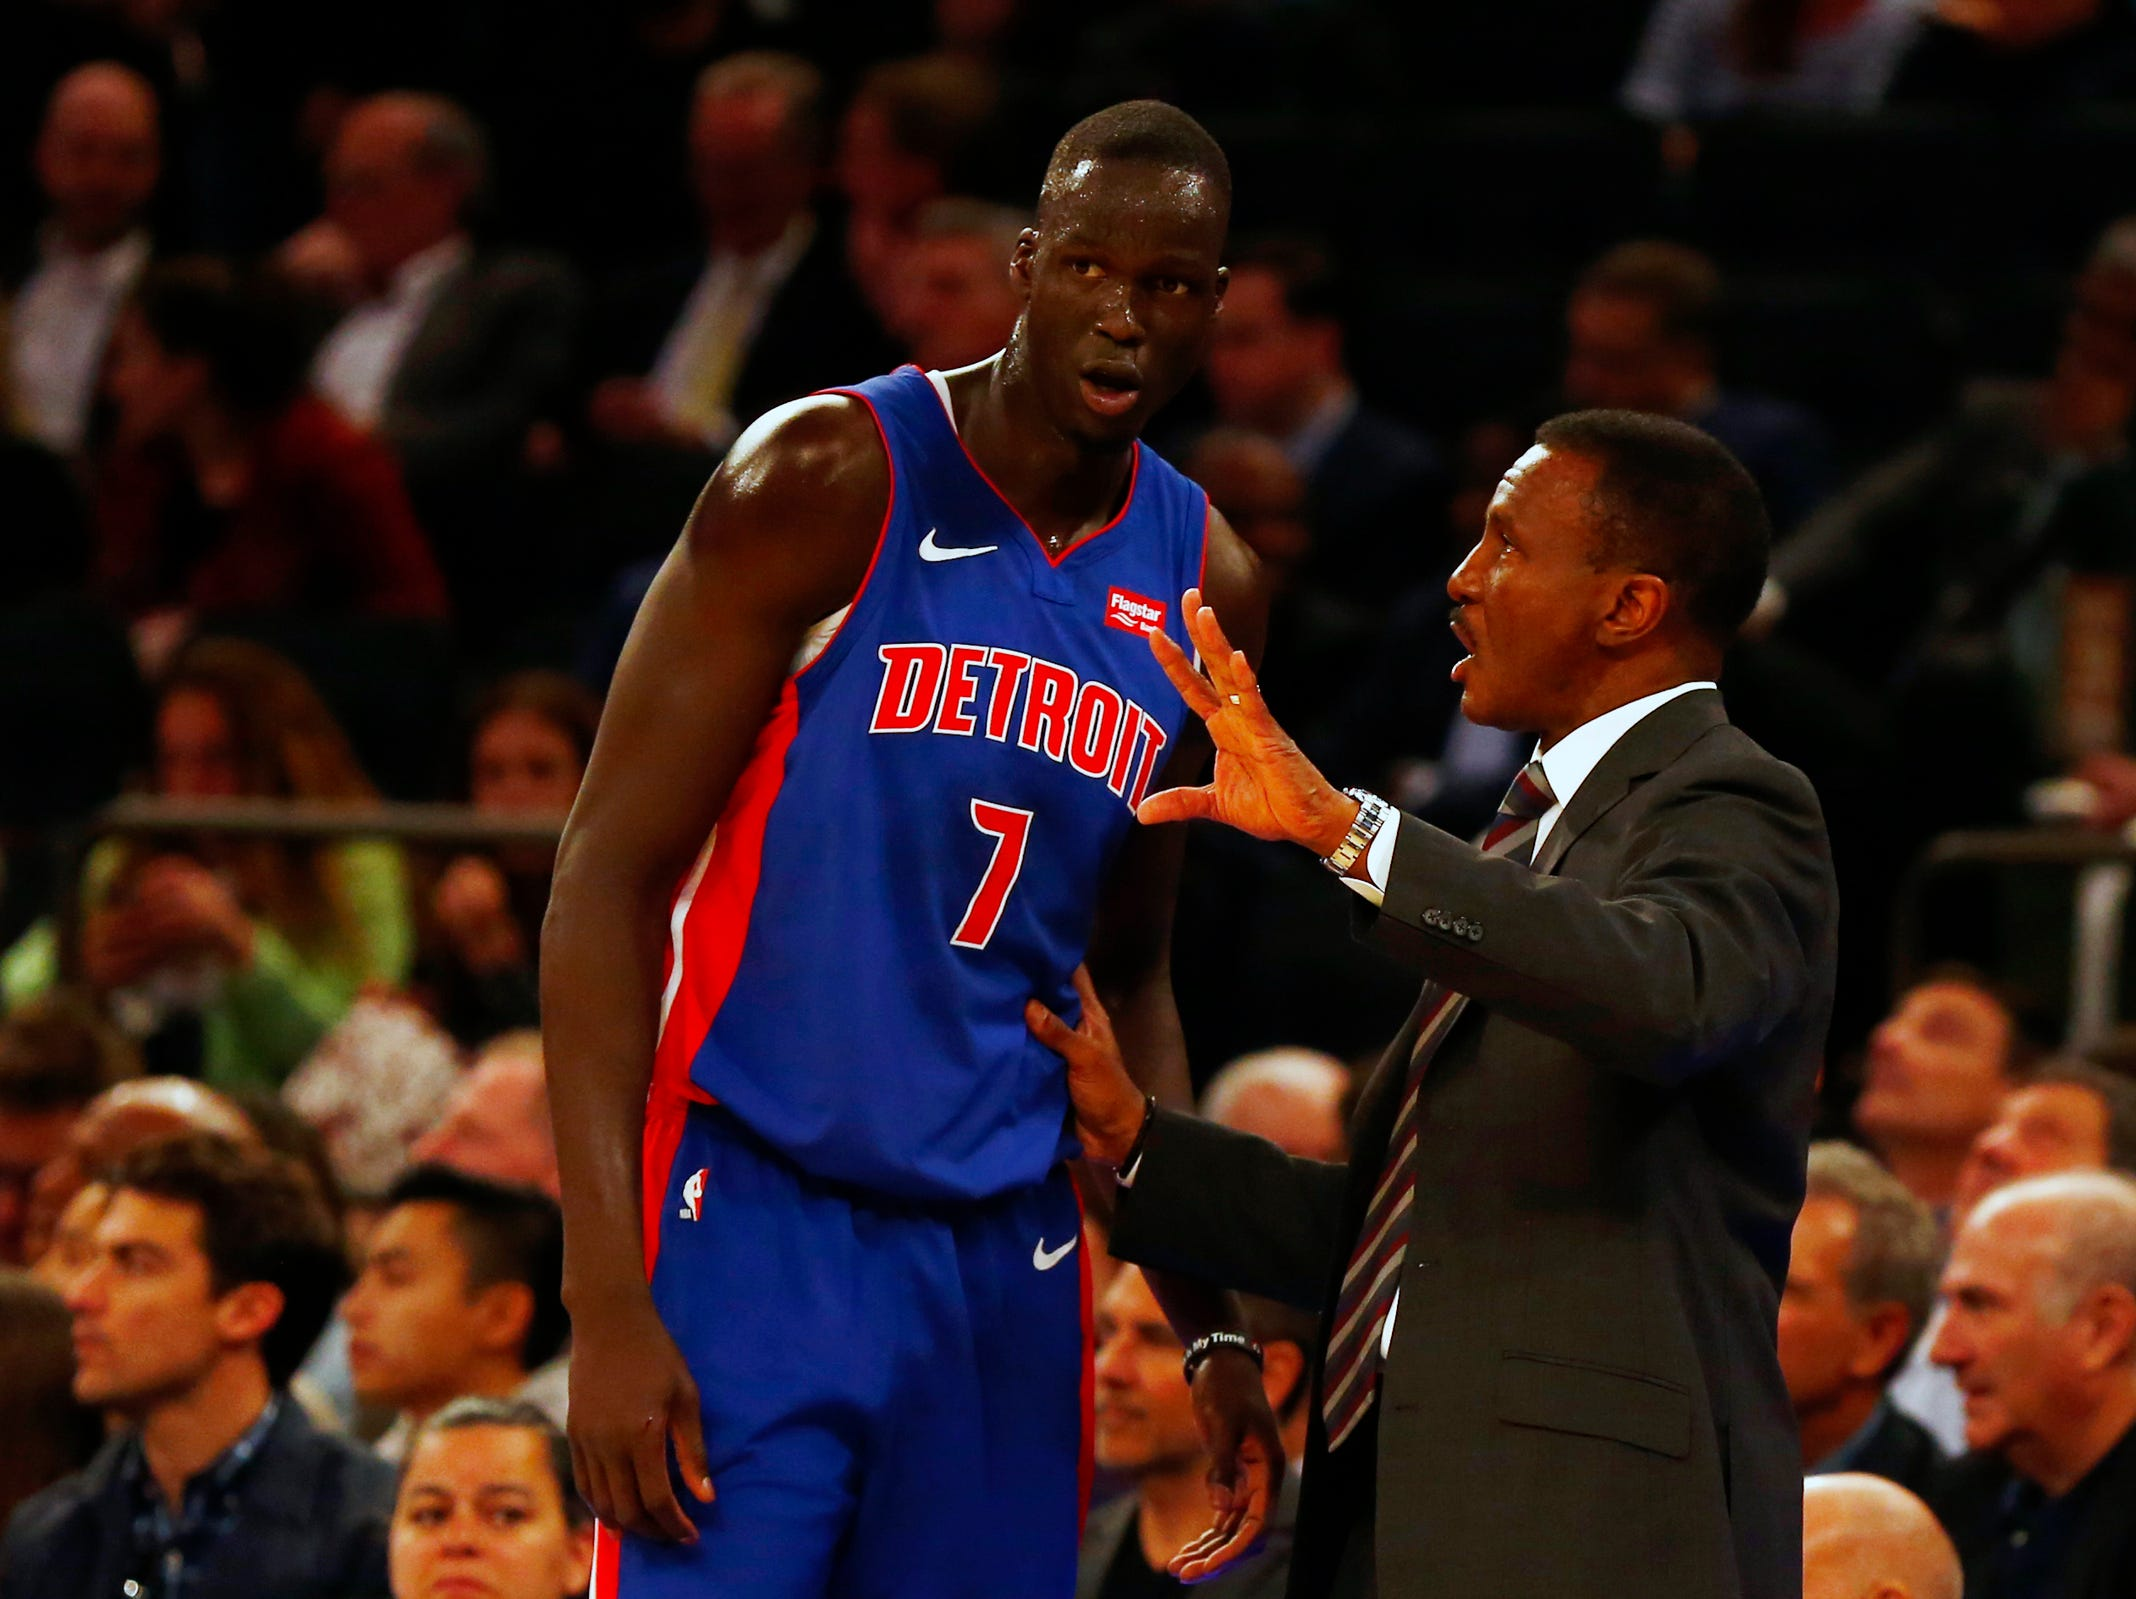 Detroit Pistons head coach Dwane Casey talks with Detroit Pistons forward Thon Maker (7) against the New York Knicks during the first half at Madison Square Garden on Wednesday, April 10, 2019.